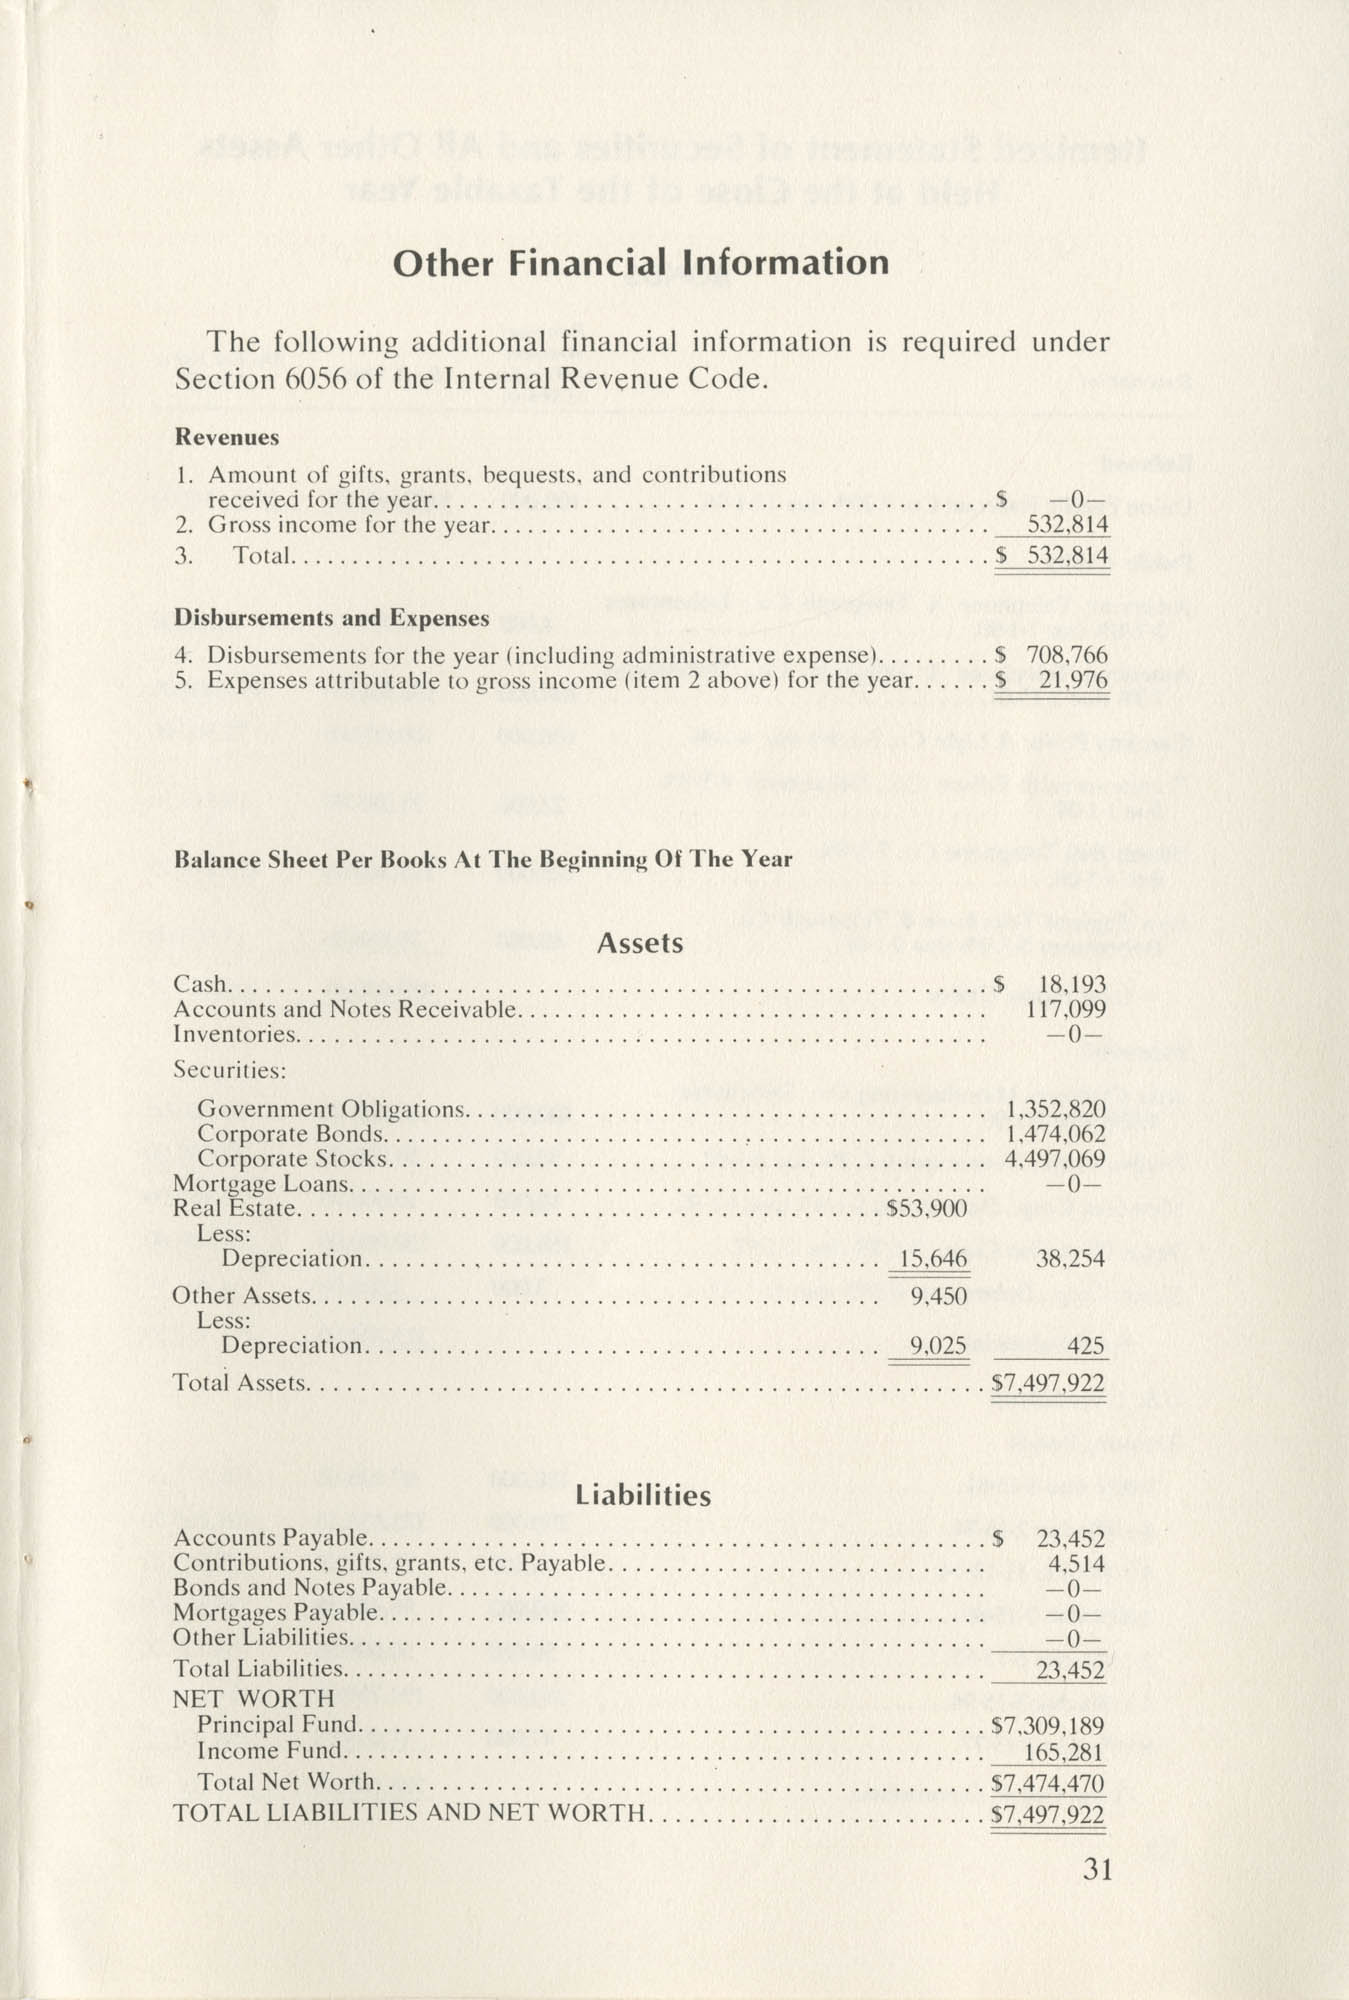 Southern Education Foundation, Annual Report 1971-1972, Page 31